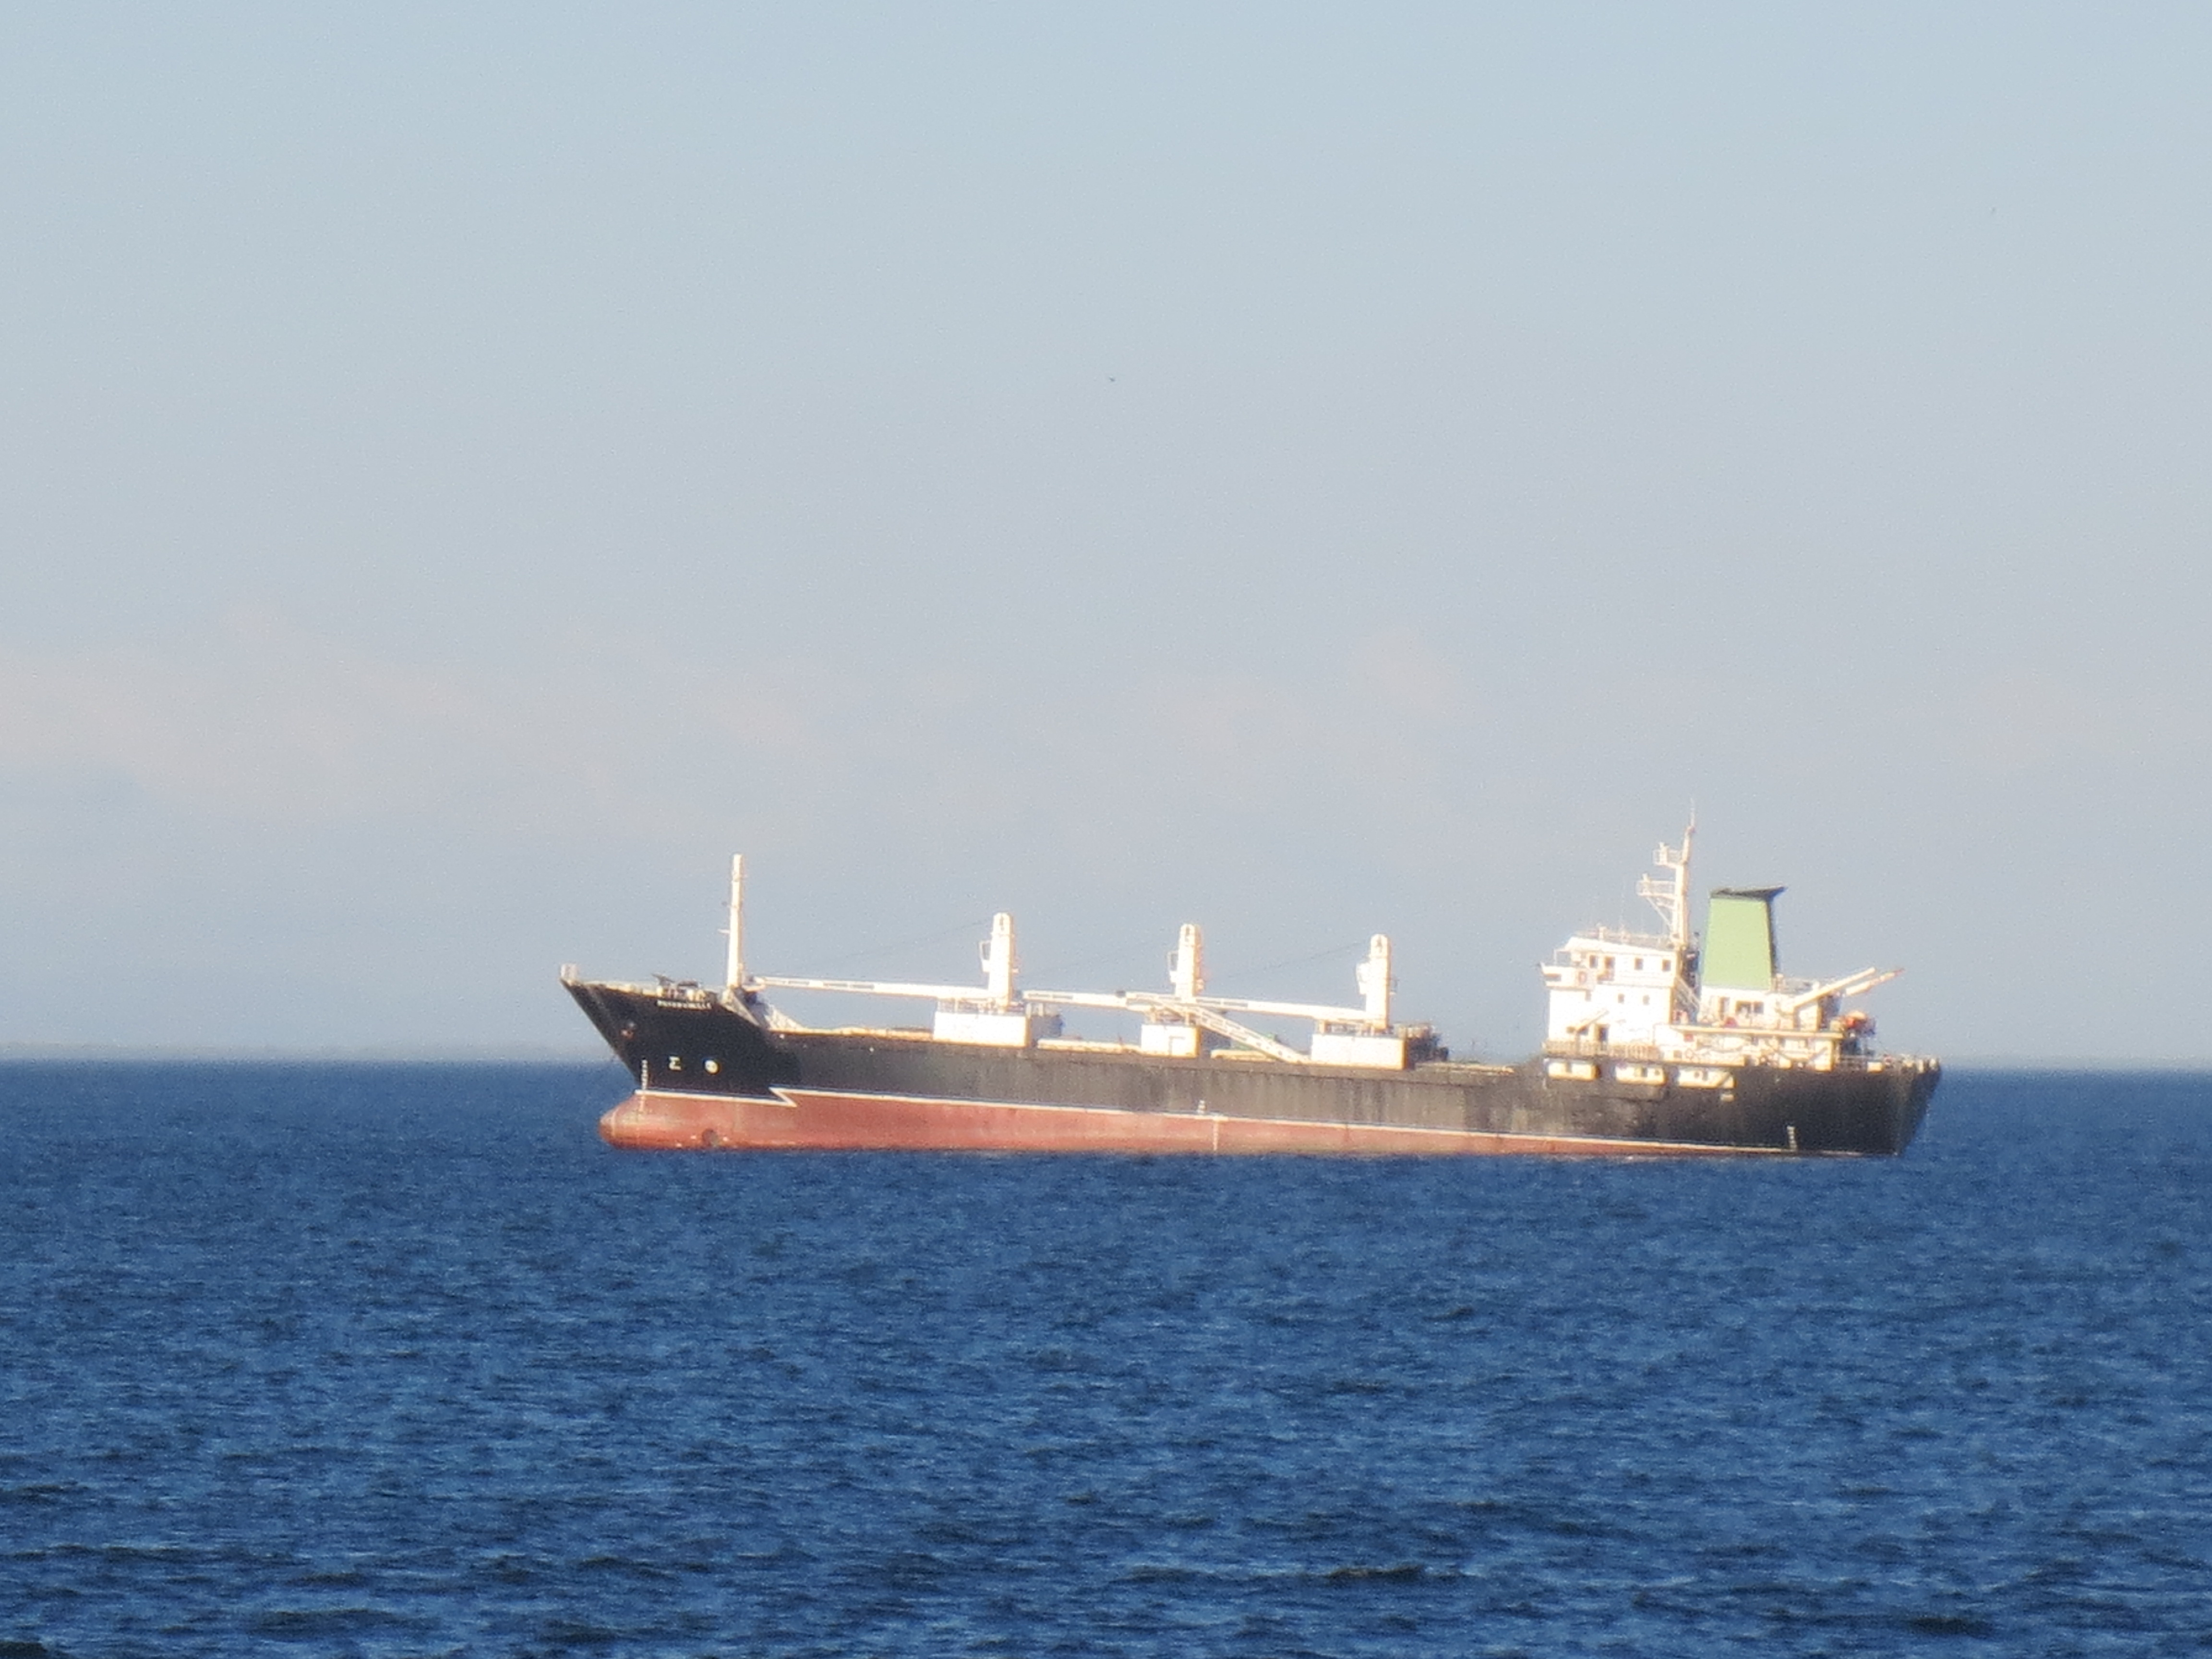 Bulk Carrier in Pacific